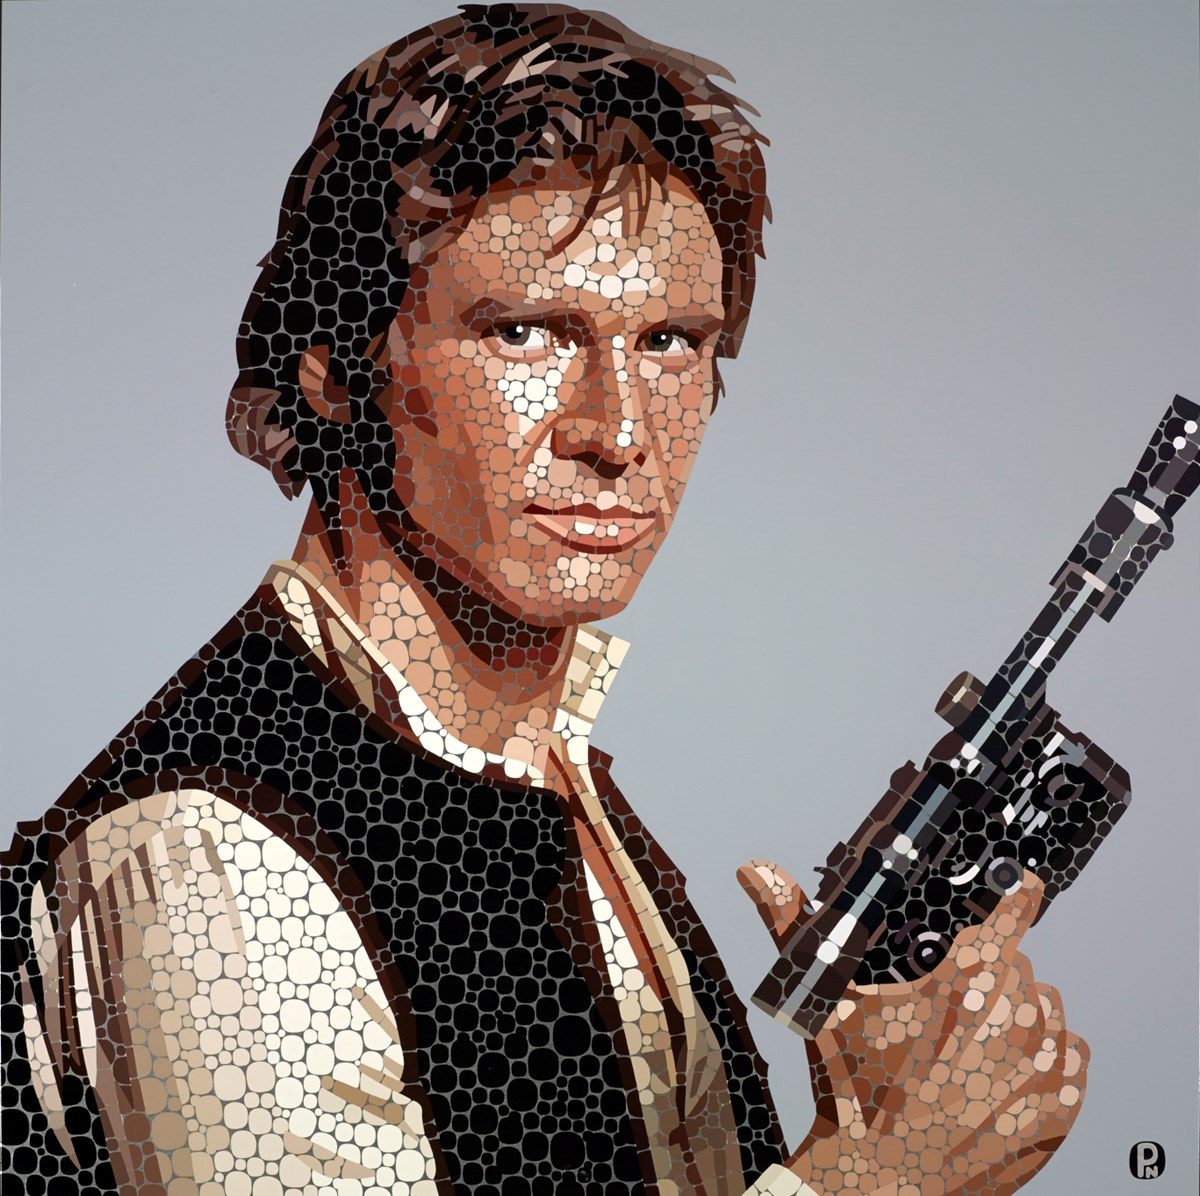 Han Solo by paul normansell -  sized 28x28 inches. Available from Whitewall Galleries